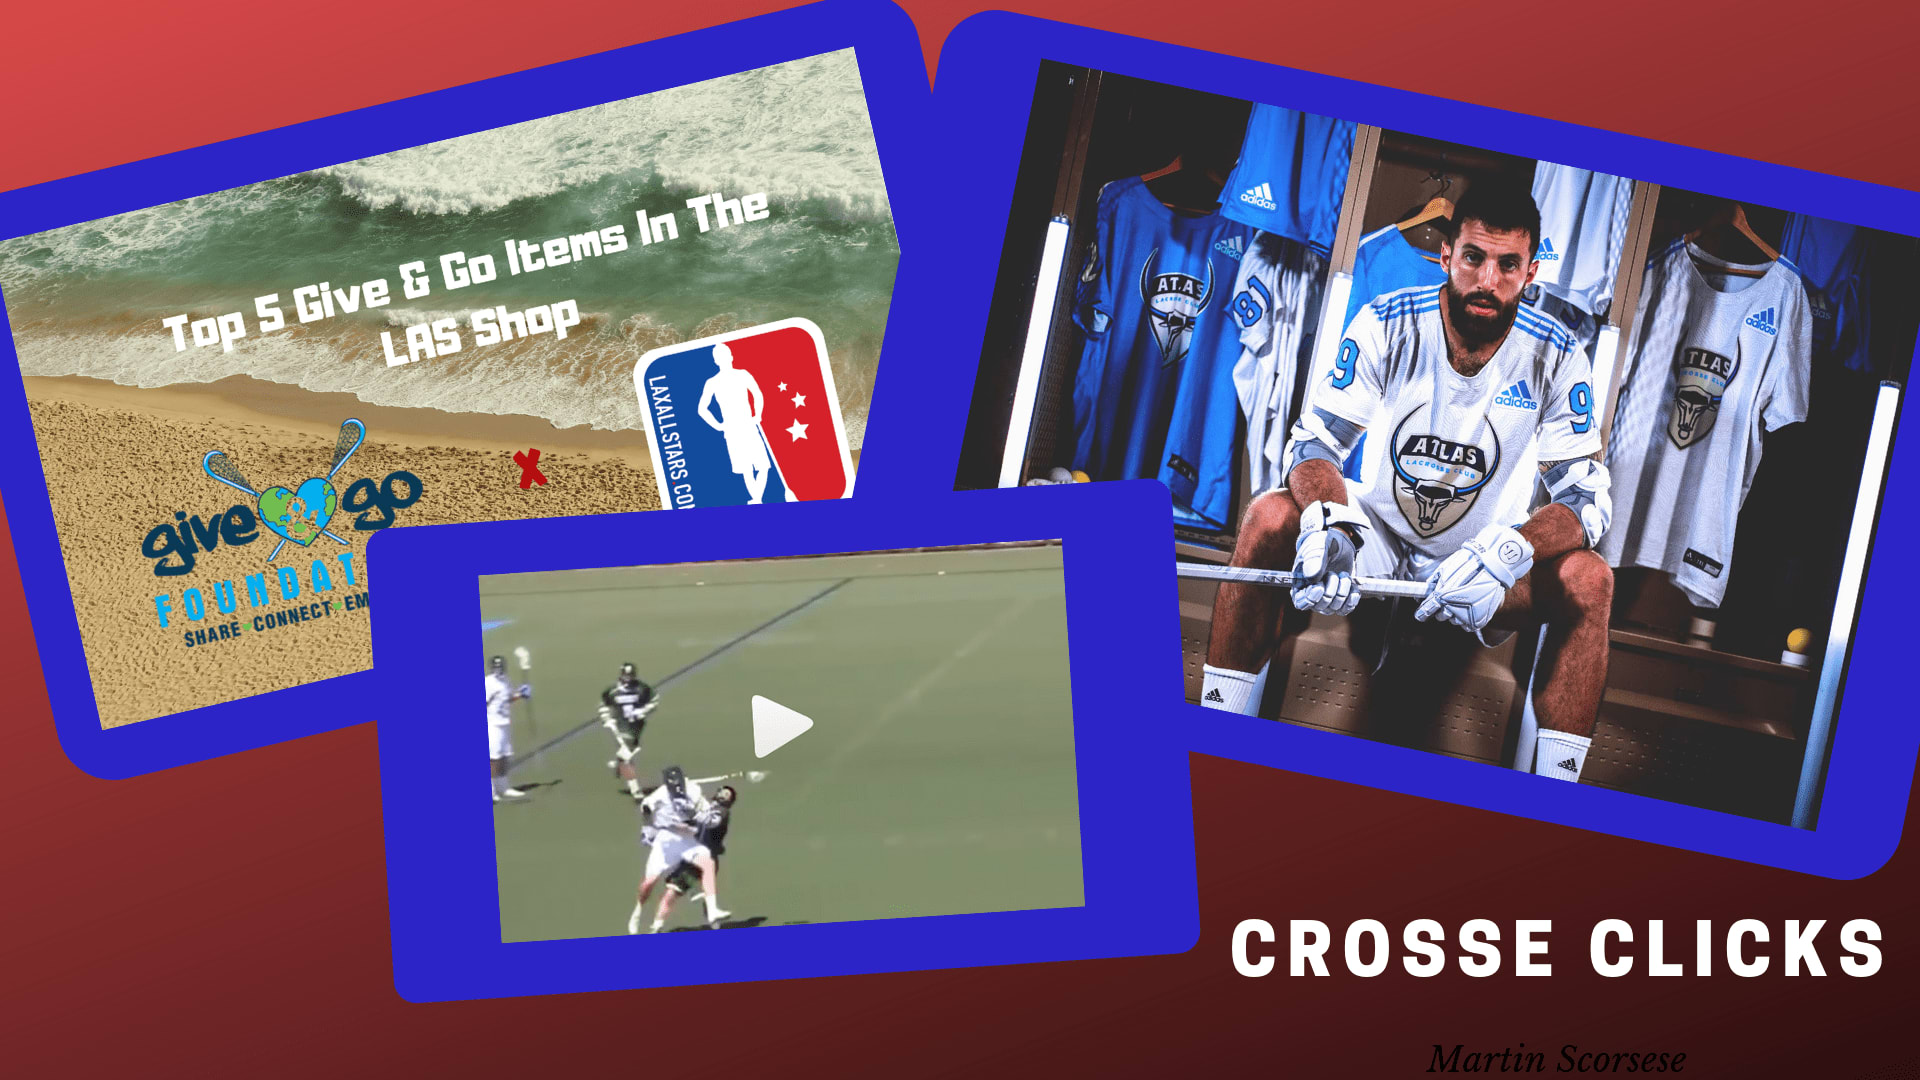 crosse clicks pll give and go lacrosse